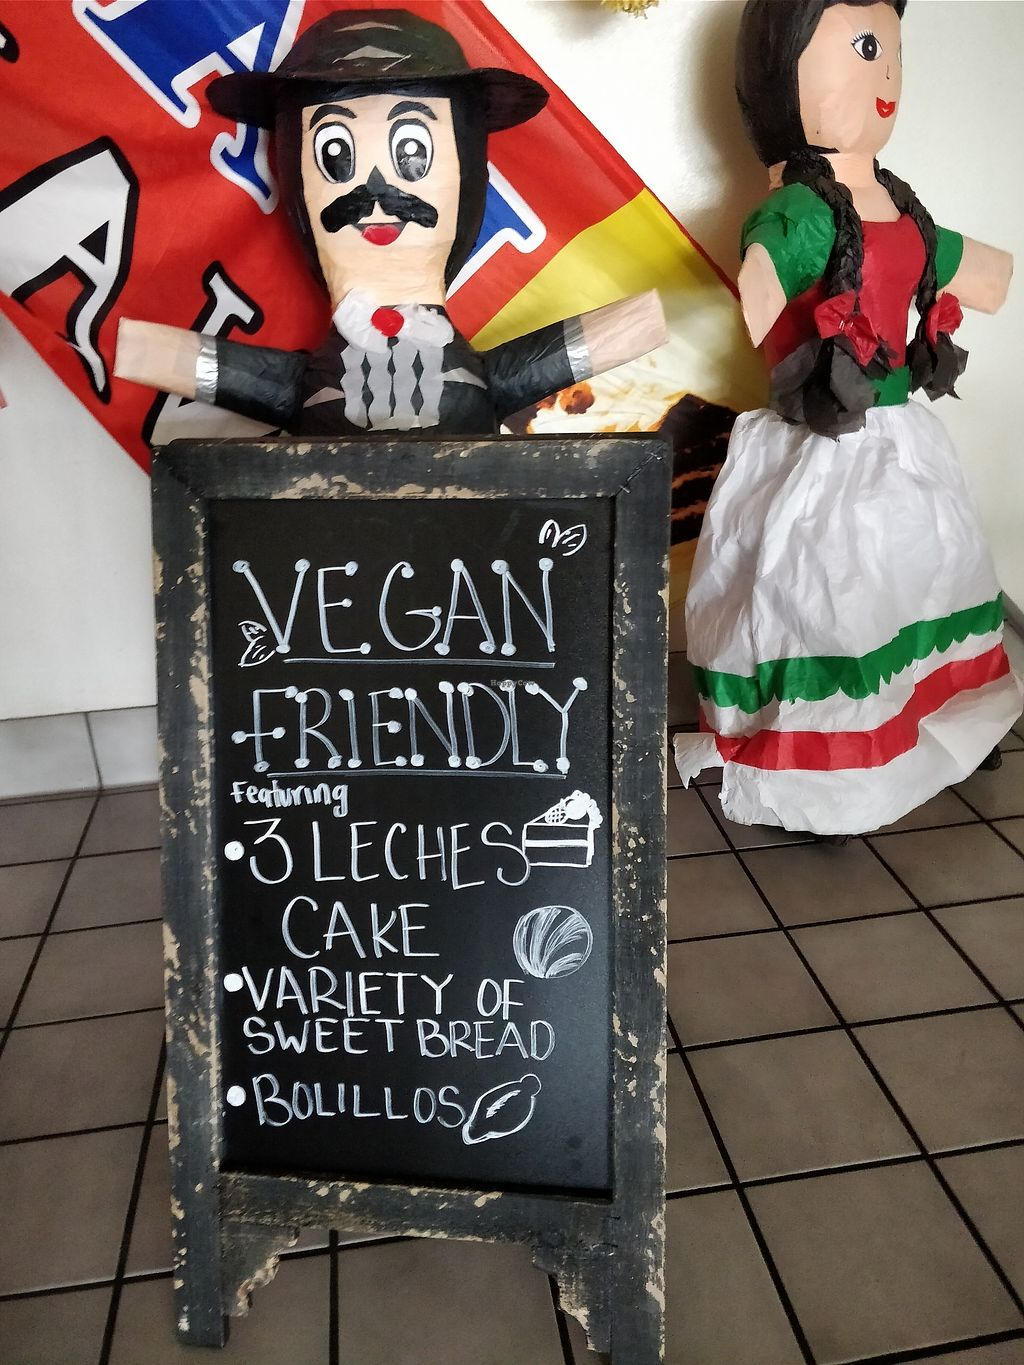 """Photo of  Panaderia Cafe Oaxaca  by <a href=""""/members/profile/SethCNelson"""">SethCNelson</a> <br/>""""Vegan Friendly"""" sign they put out front <br/> February 11, 2018  - <a href='/contact/abuse/image/111740/357634'>Report</a>"""